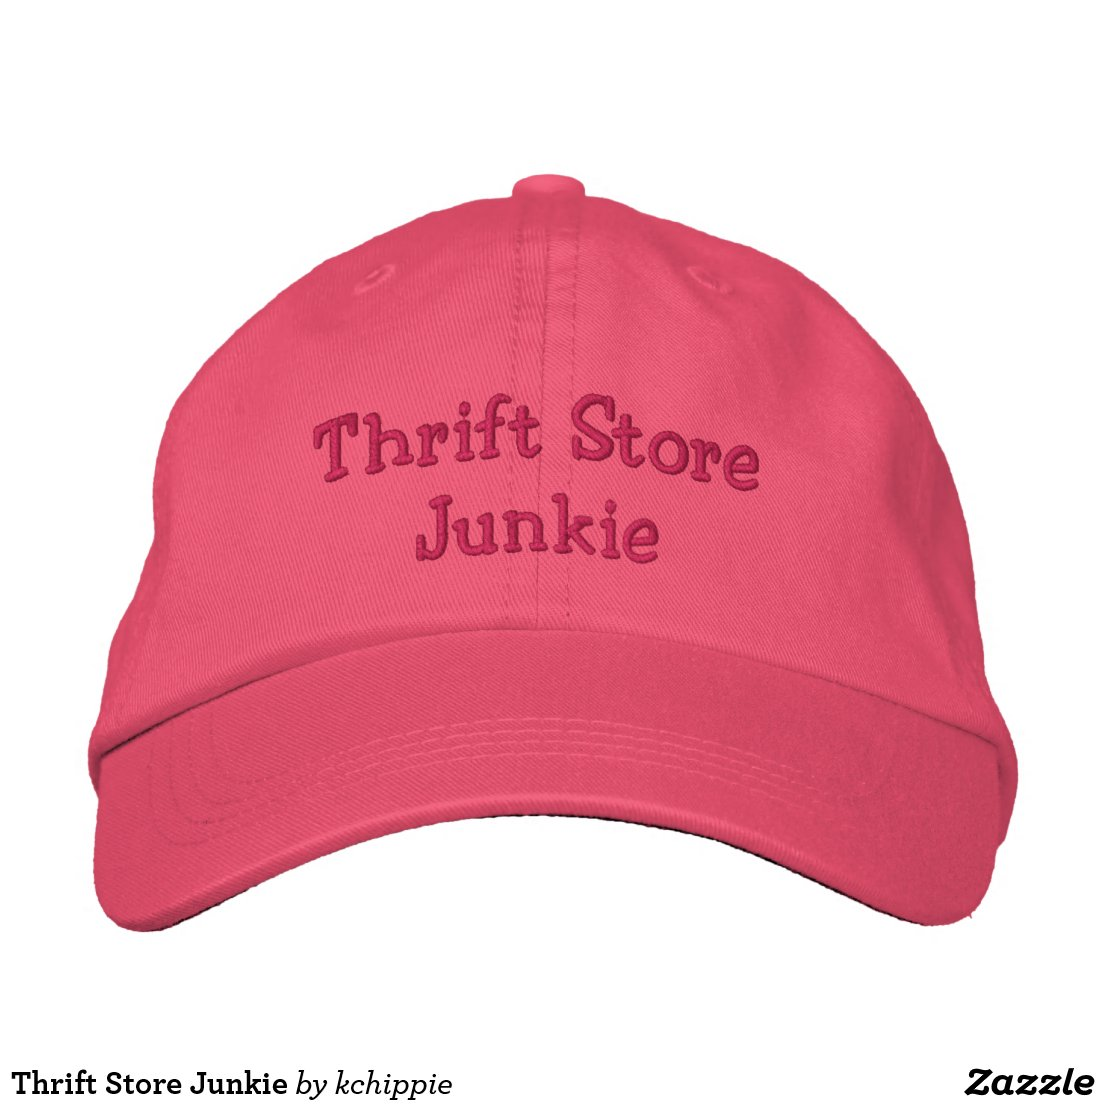 Thrift Store Junkie Embroidered Baseball Cap